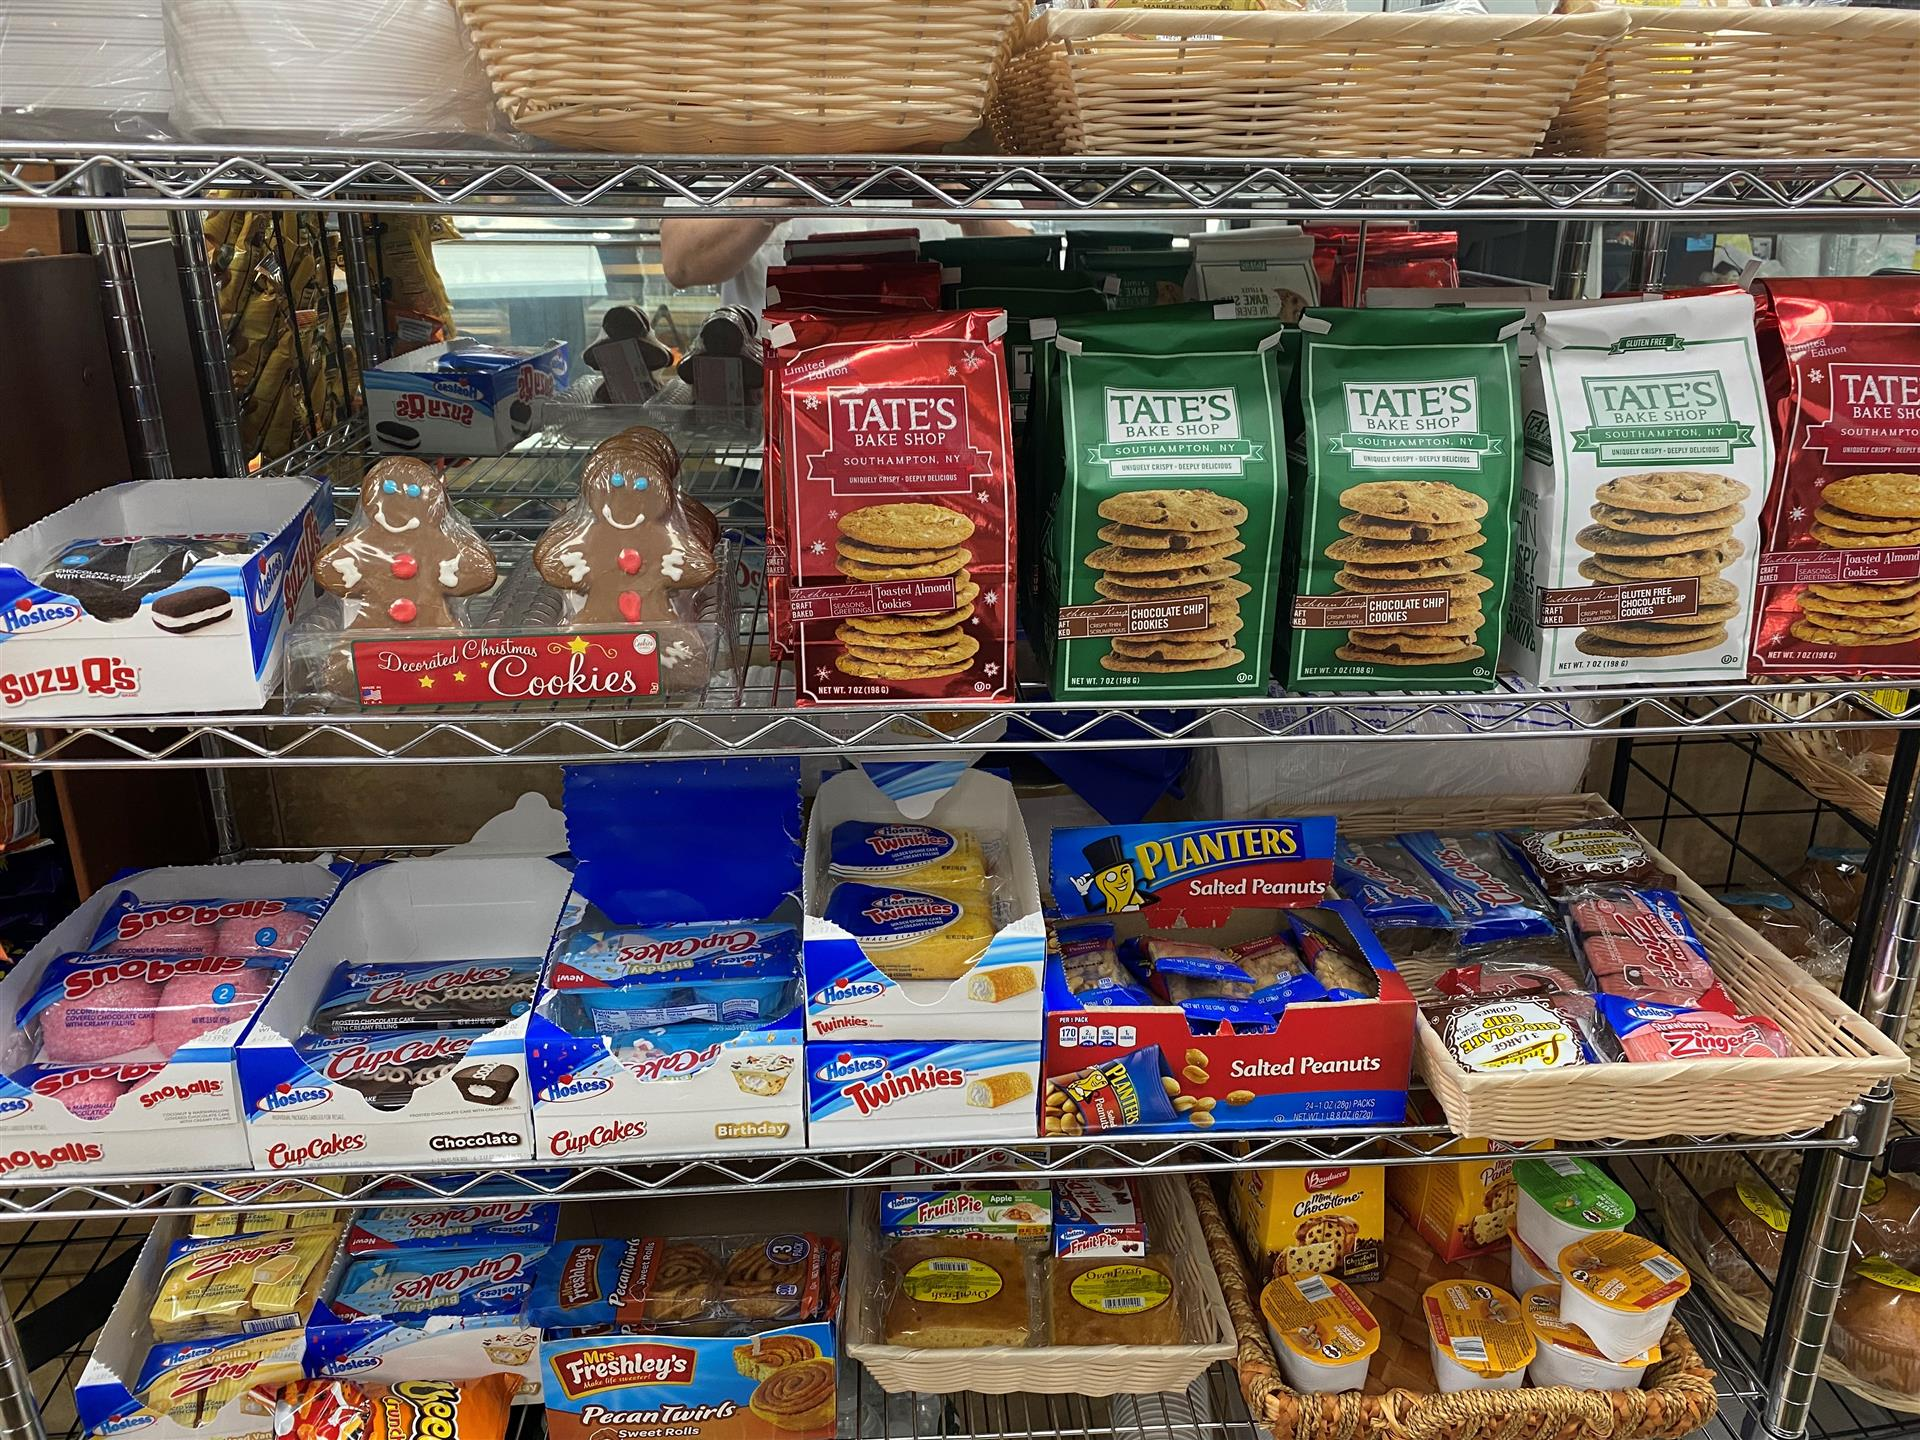 shelves of cookies and snack cakes